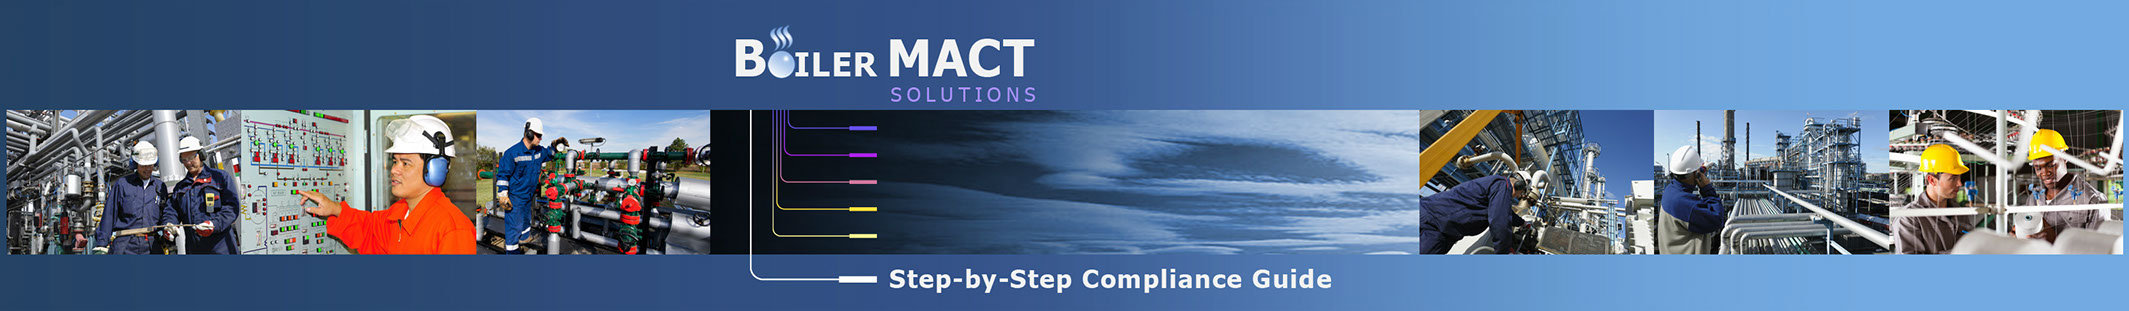 Boiler MACT Compliance Guide Banner